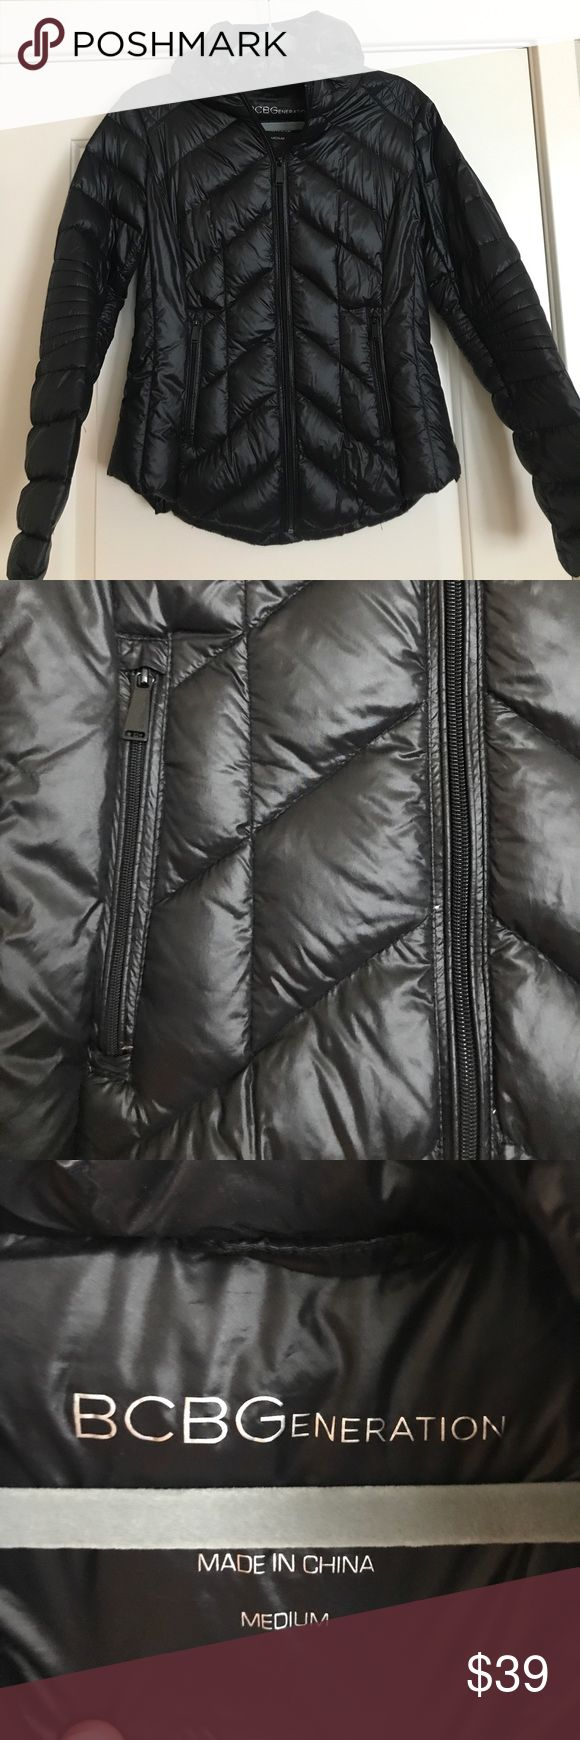 BCBG down puffer jacket! Black, size Medium! All black BCBG down puffer fitted jacket! So lightweight and cozy! A winter ❄️ must have! BCBGeneration Jackets & Coats Puffers